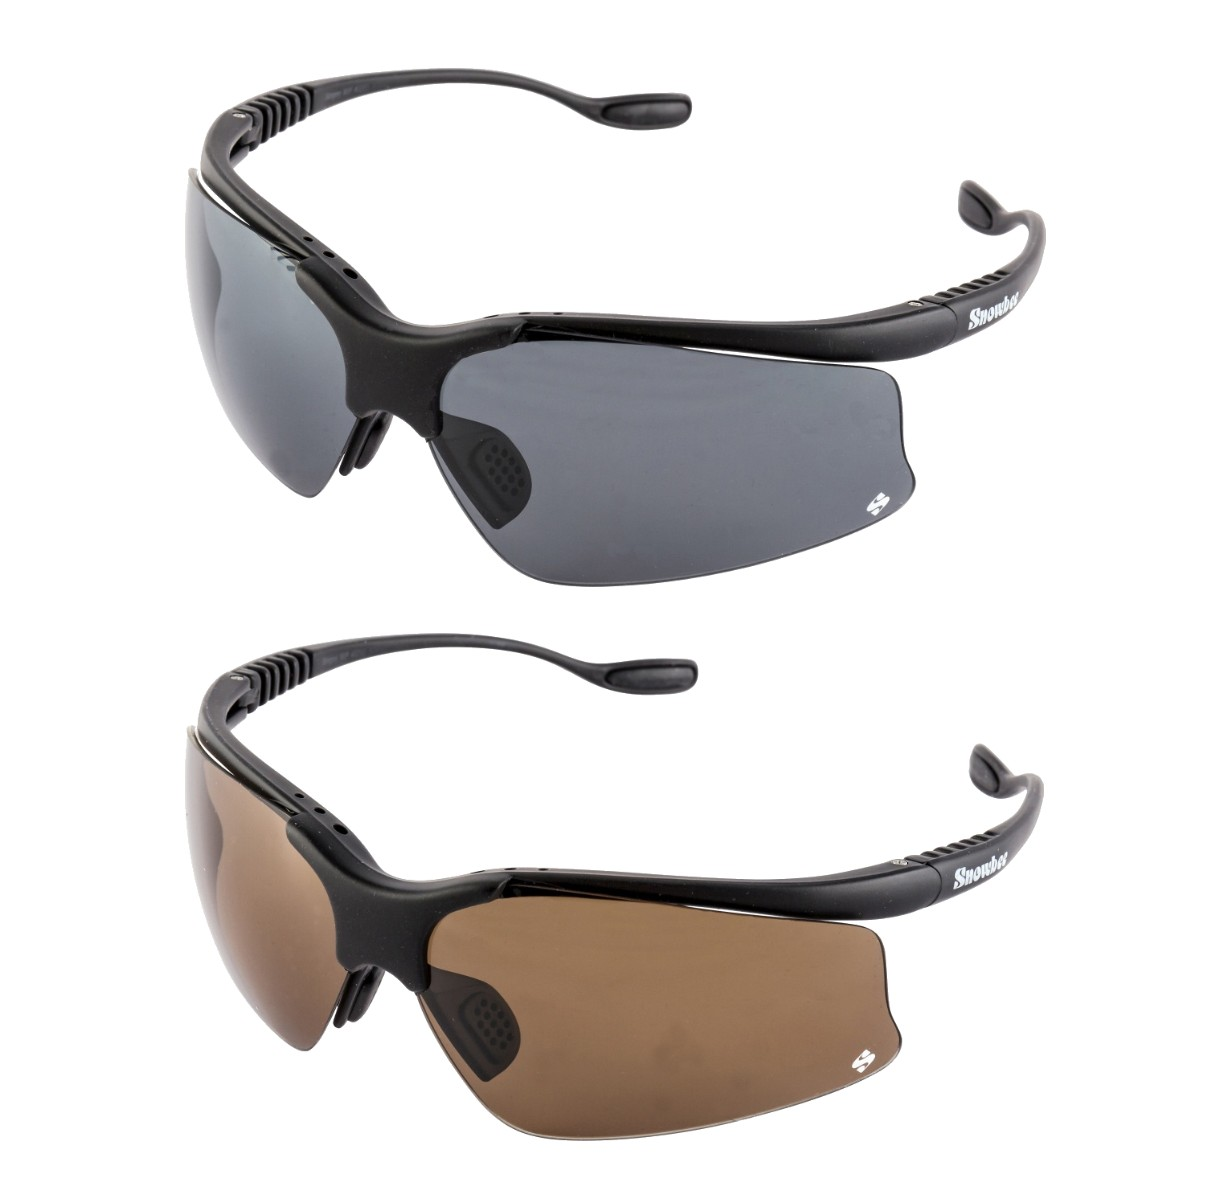 8bbe427b7a6 Polarized Fishing Glasses With Magnifier « One More Soul